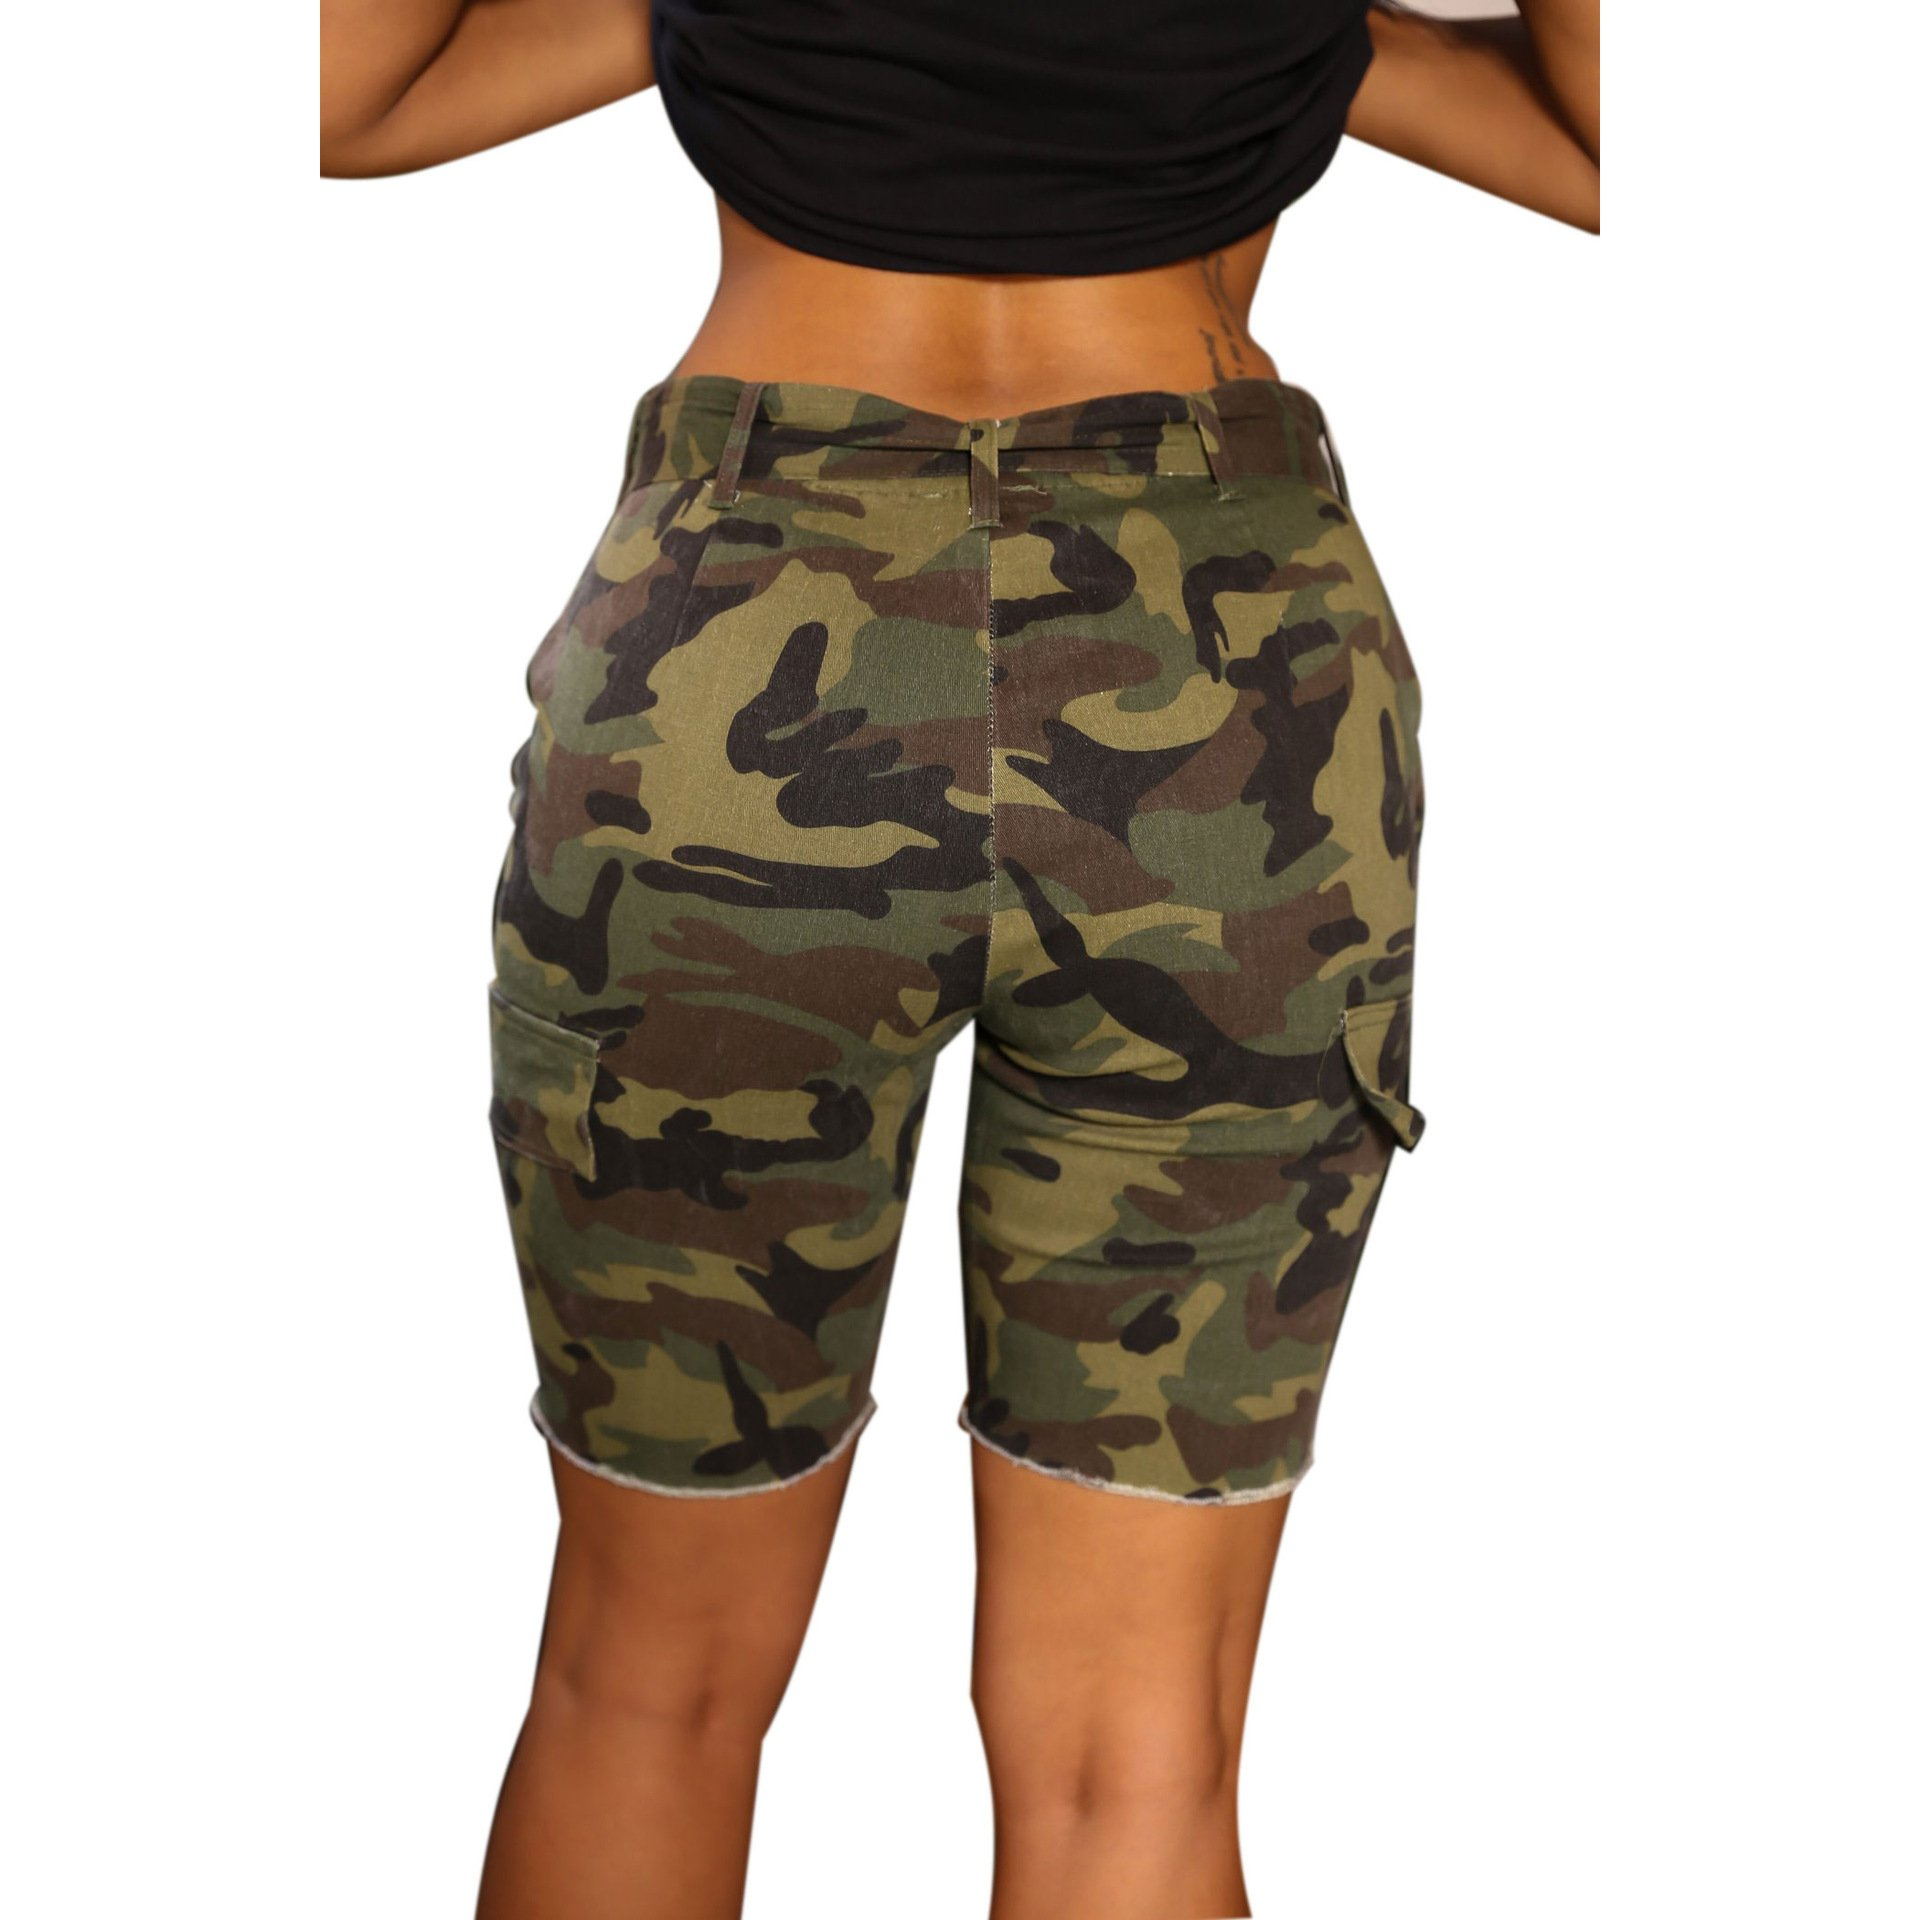 PINLI Camouflage Womens Denim Shorts Sexy Casual Summer Stretch Plus Size high Waisted Beach Jeans Shorts Capri (Camo L) by PINLI (Image #3)